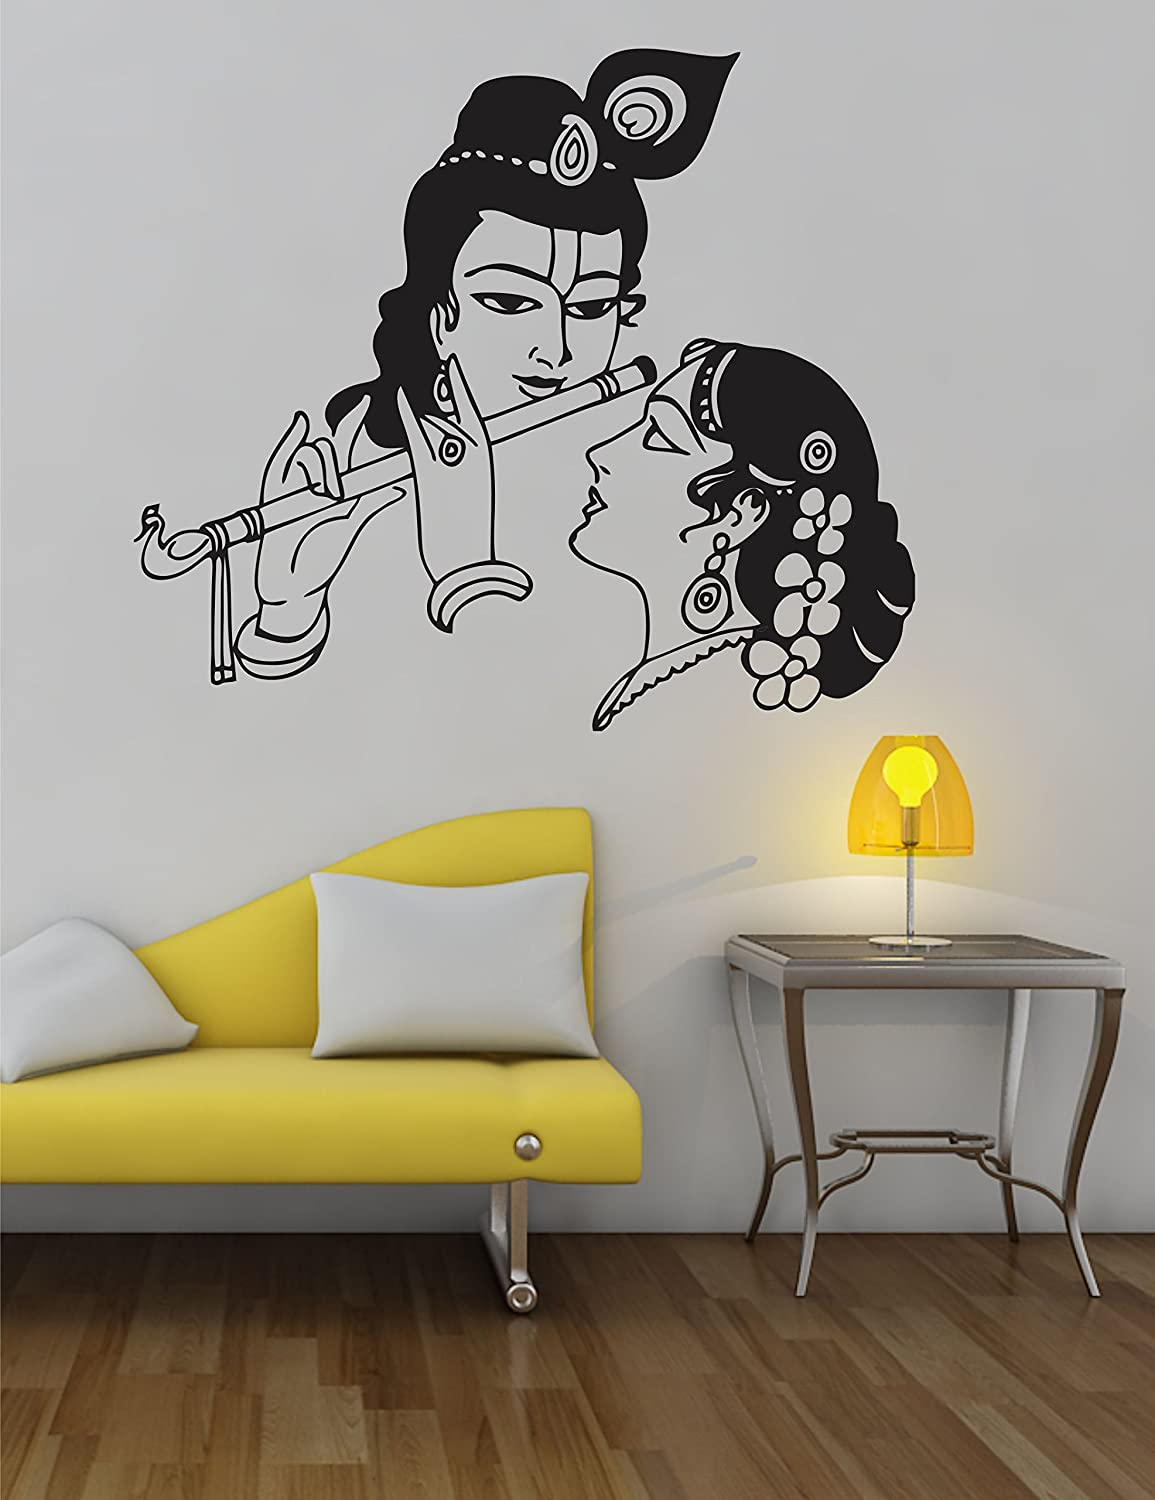 Wall stickers radha krishna - Buy Ddreamz Radha Krishna Vinyl Wall Sticker Black Online At Low Prices In India Amazon In